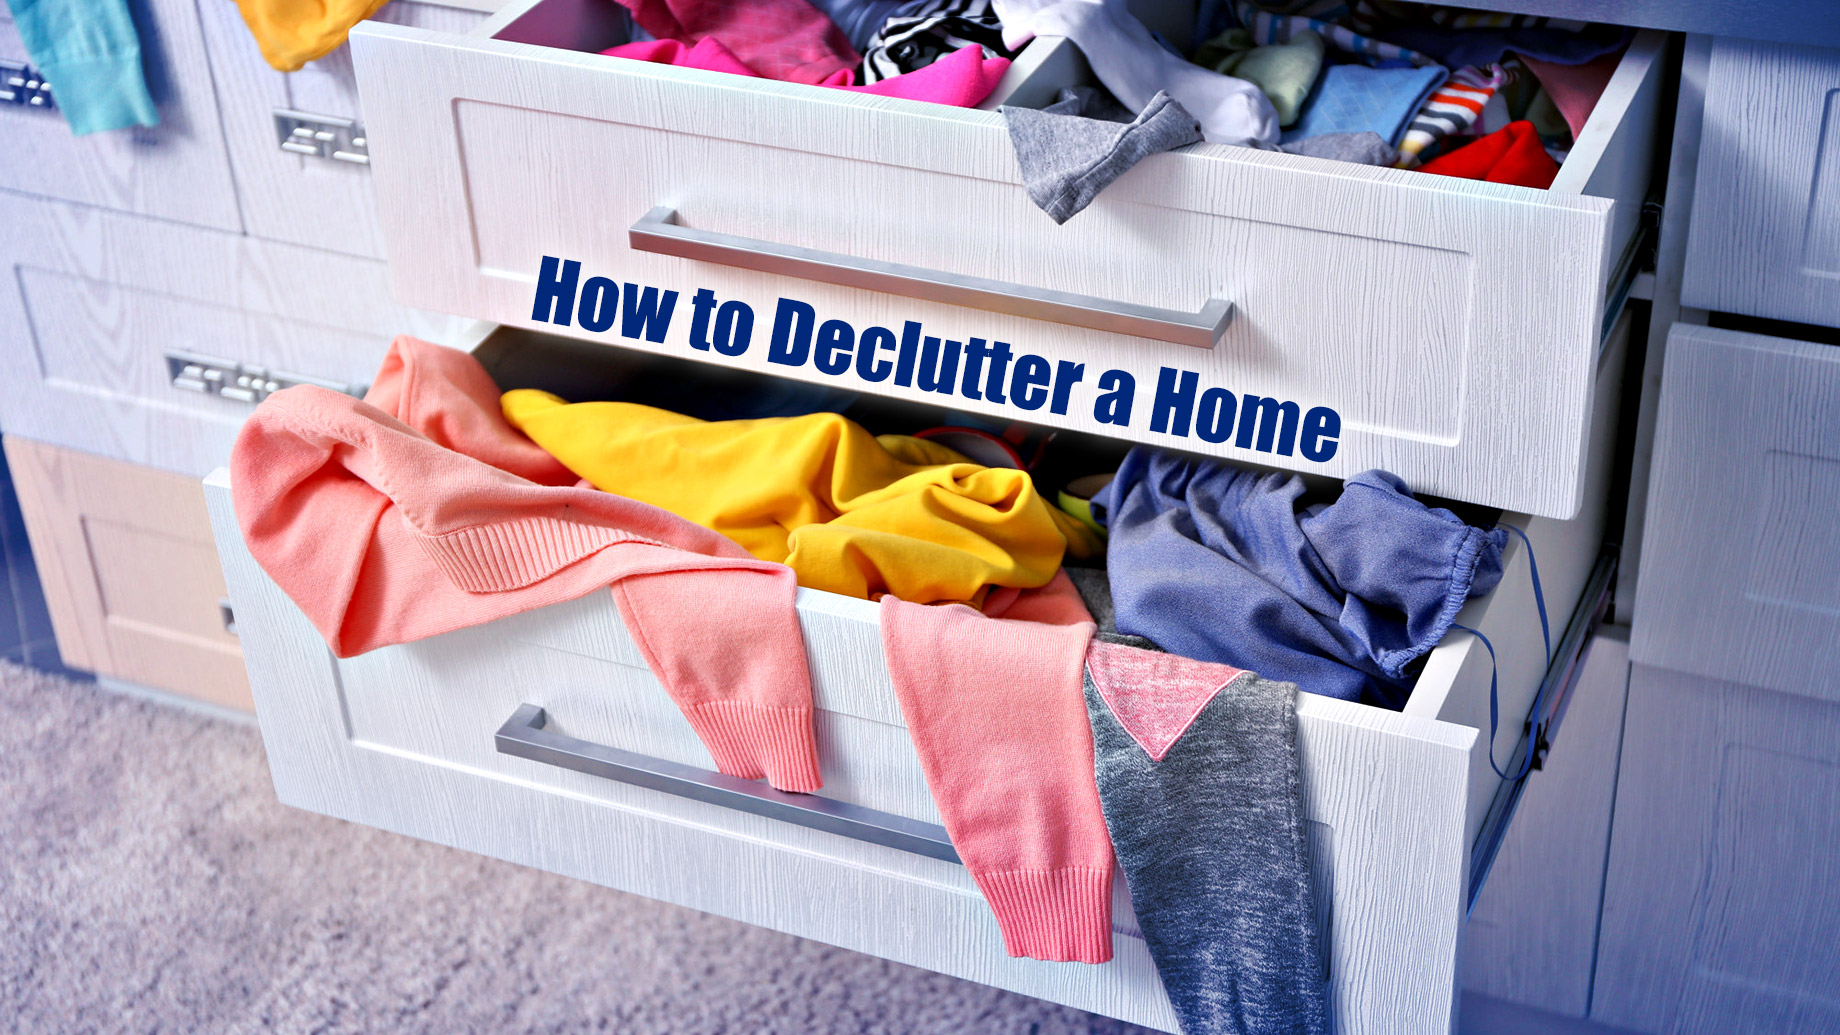 How to Declutter a Home - The Ultimate Guide